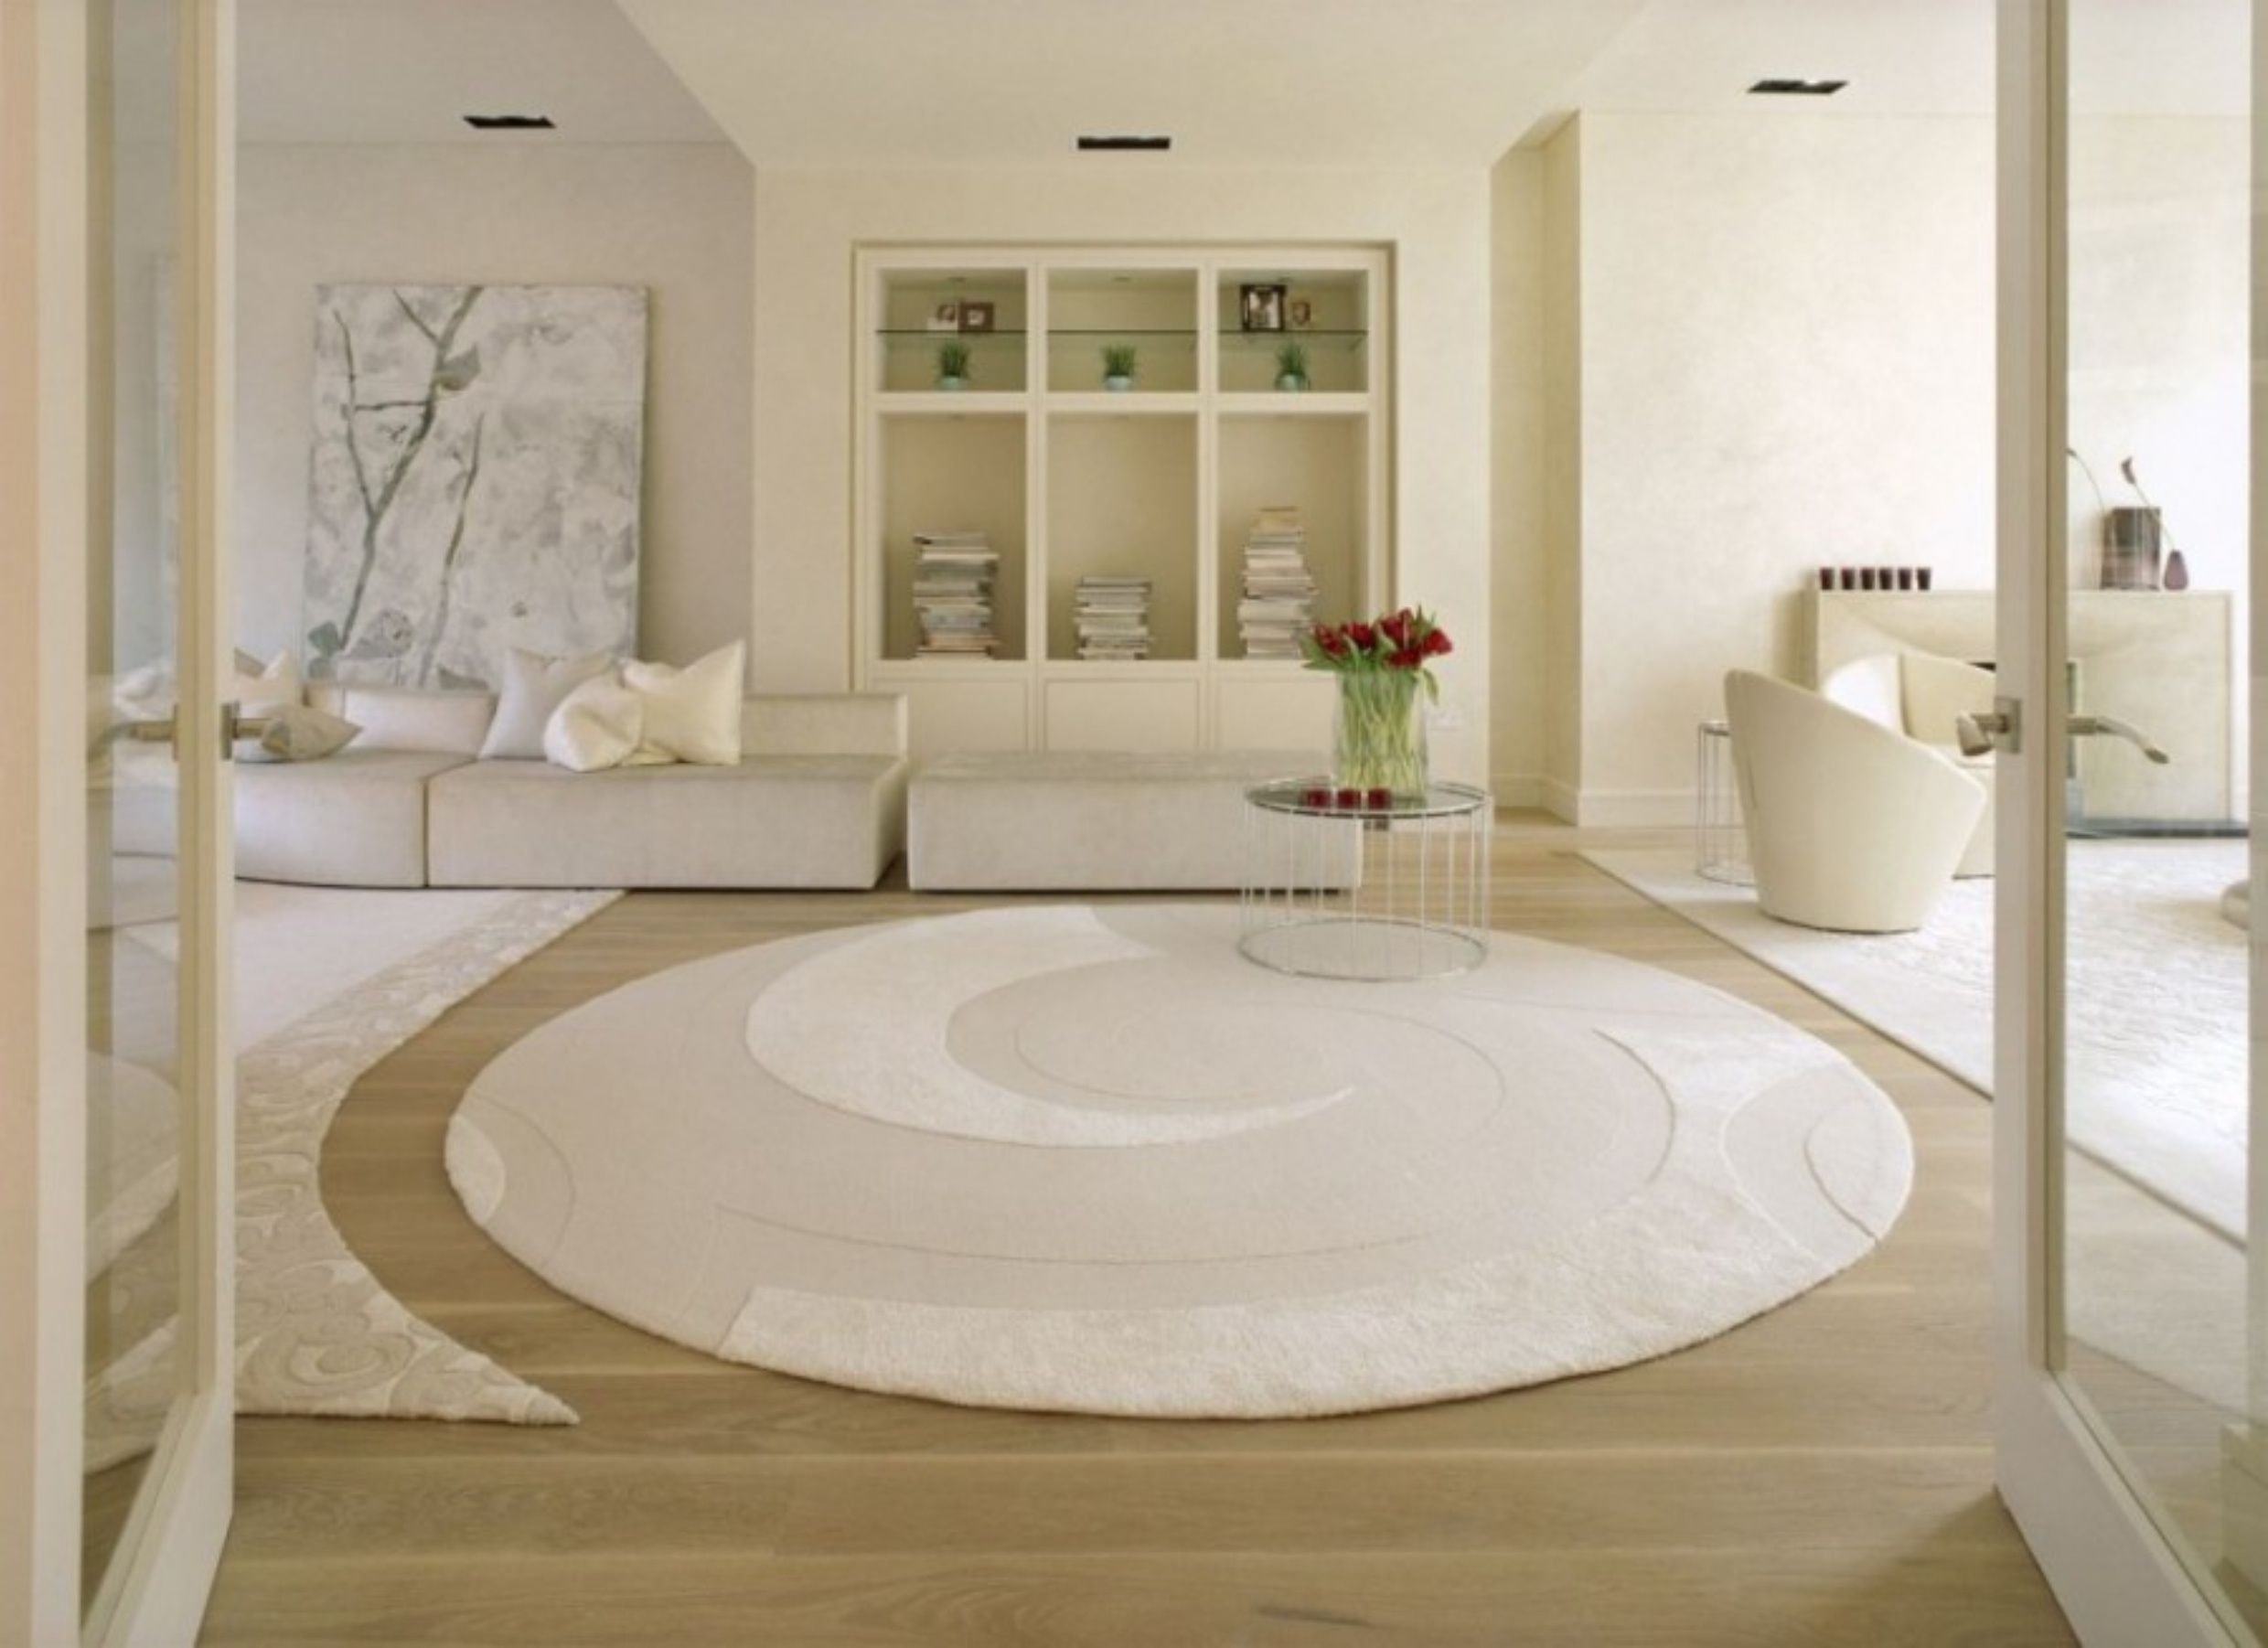 White Round Extra Large Bathroom Rug Large Bathroom Rugs - Designer bathroom rugs for bathroom decorating ideas